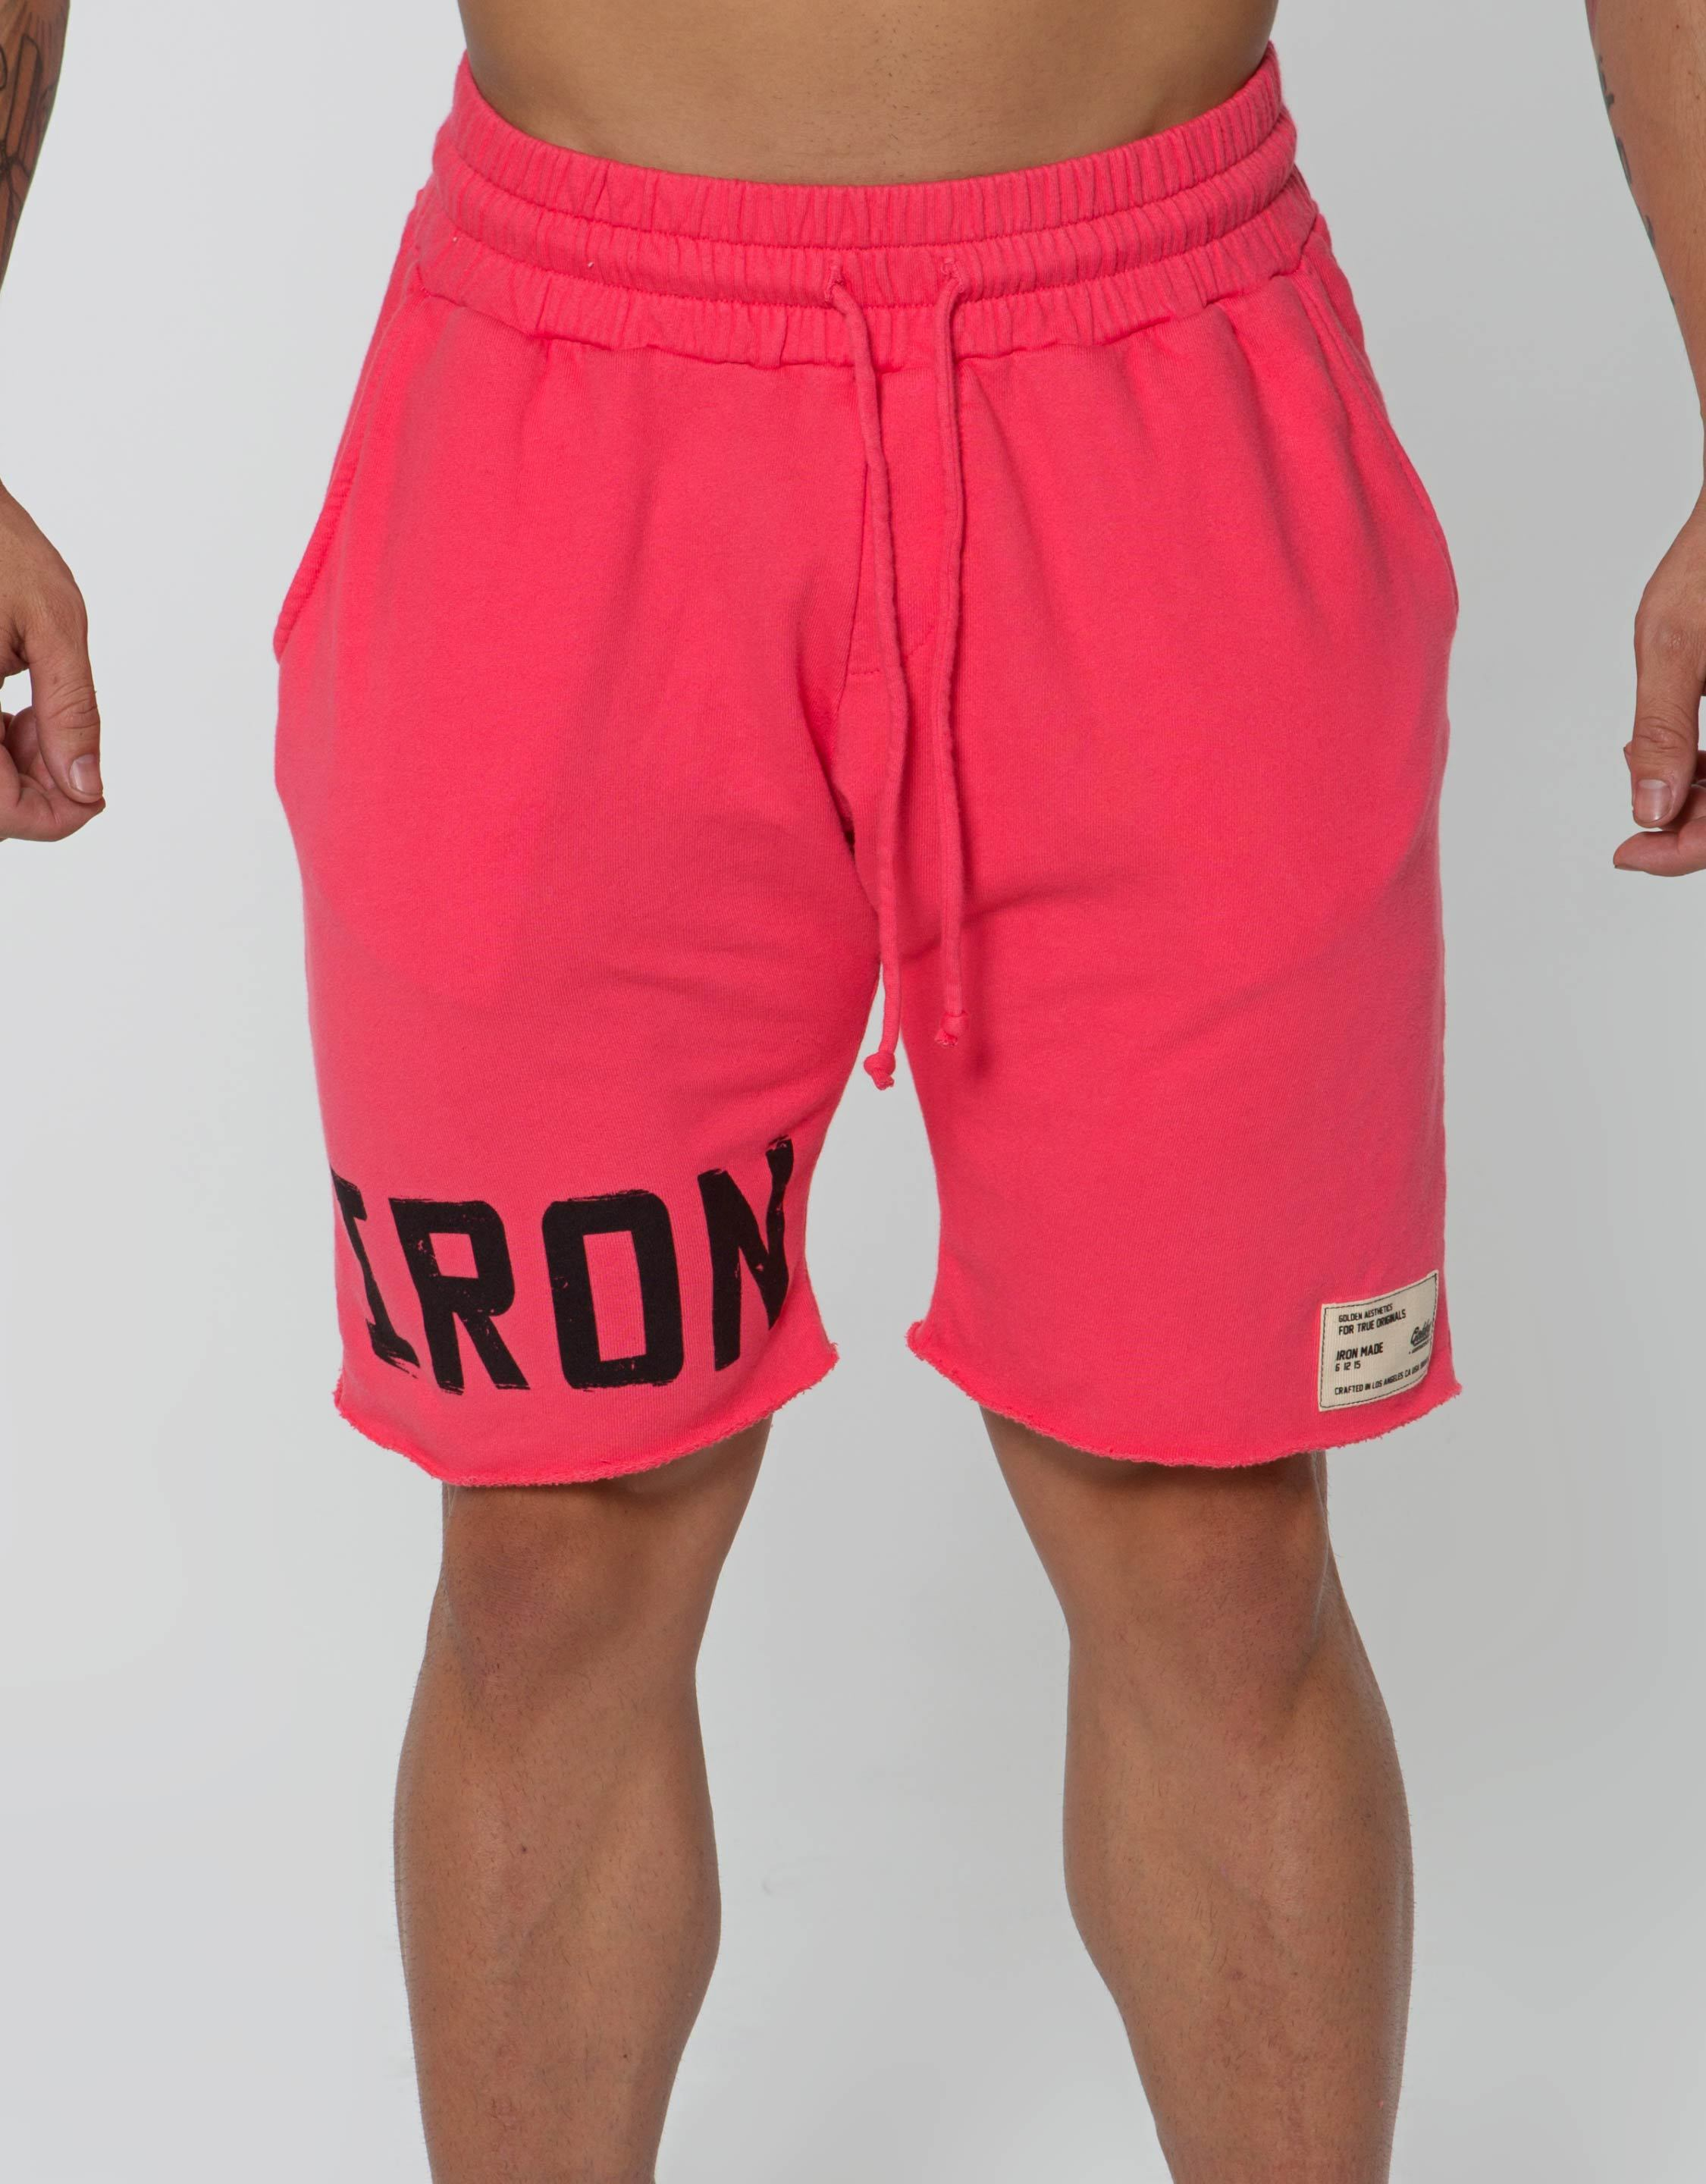 IRON Raw Shorts - Faded Red - Golden Aesthetics